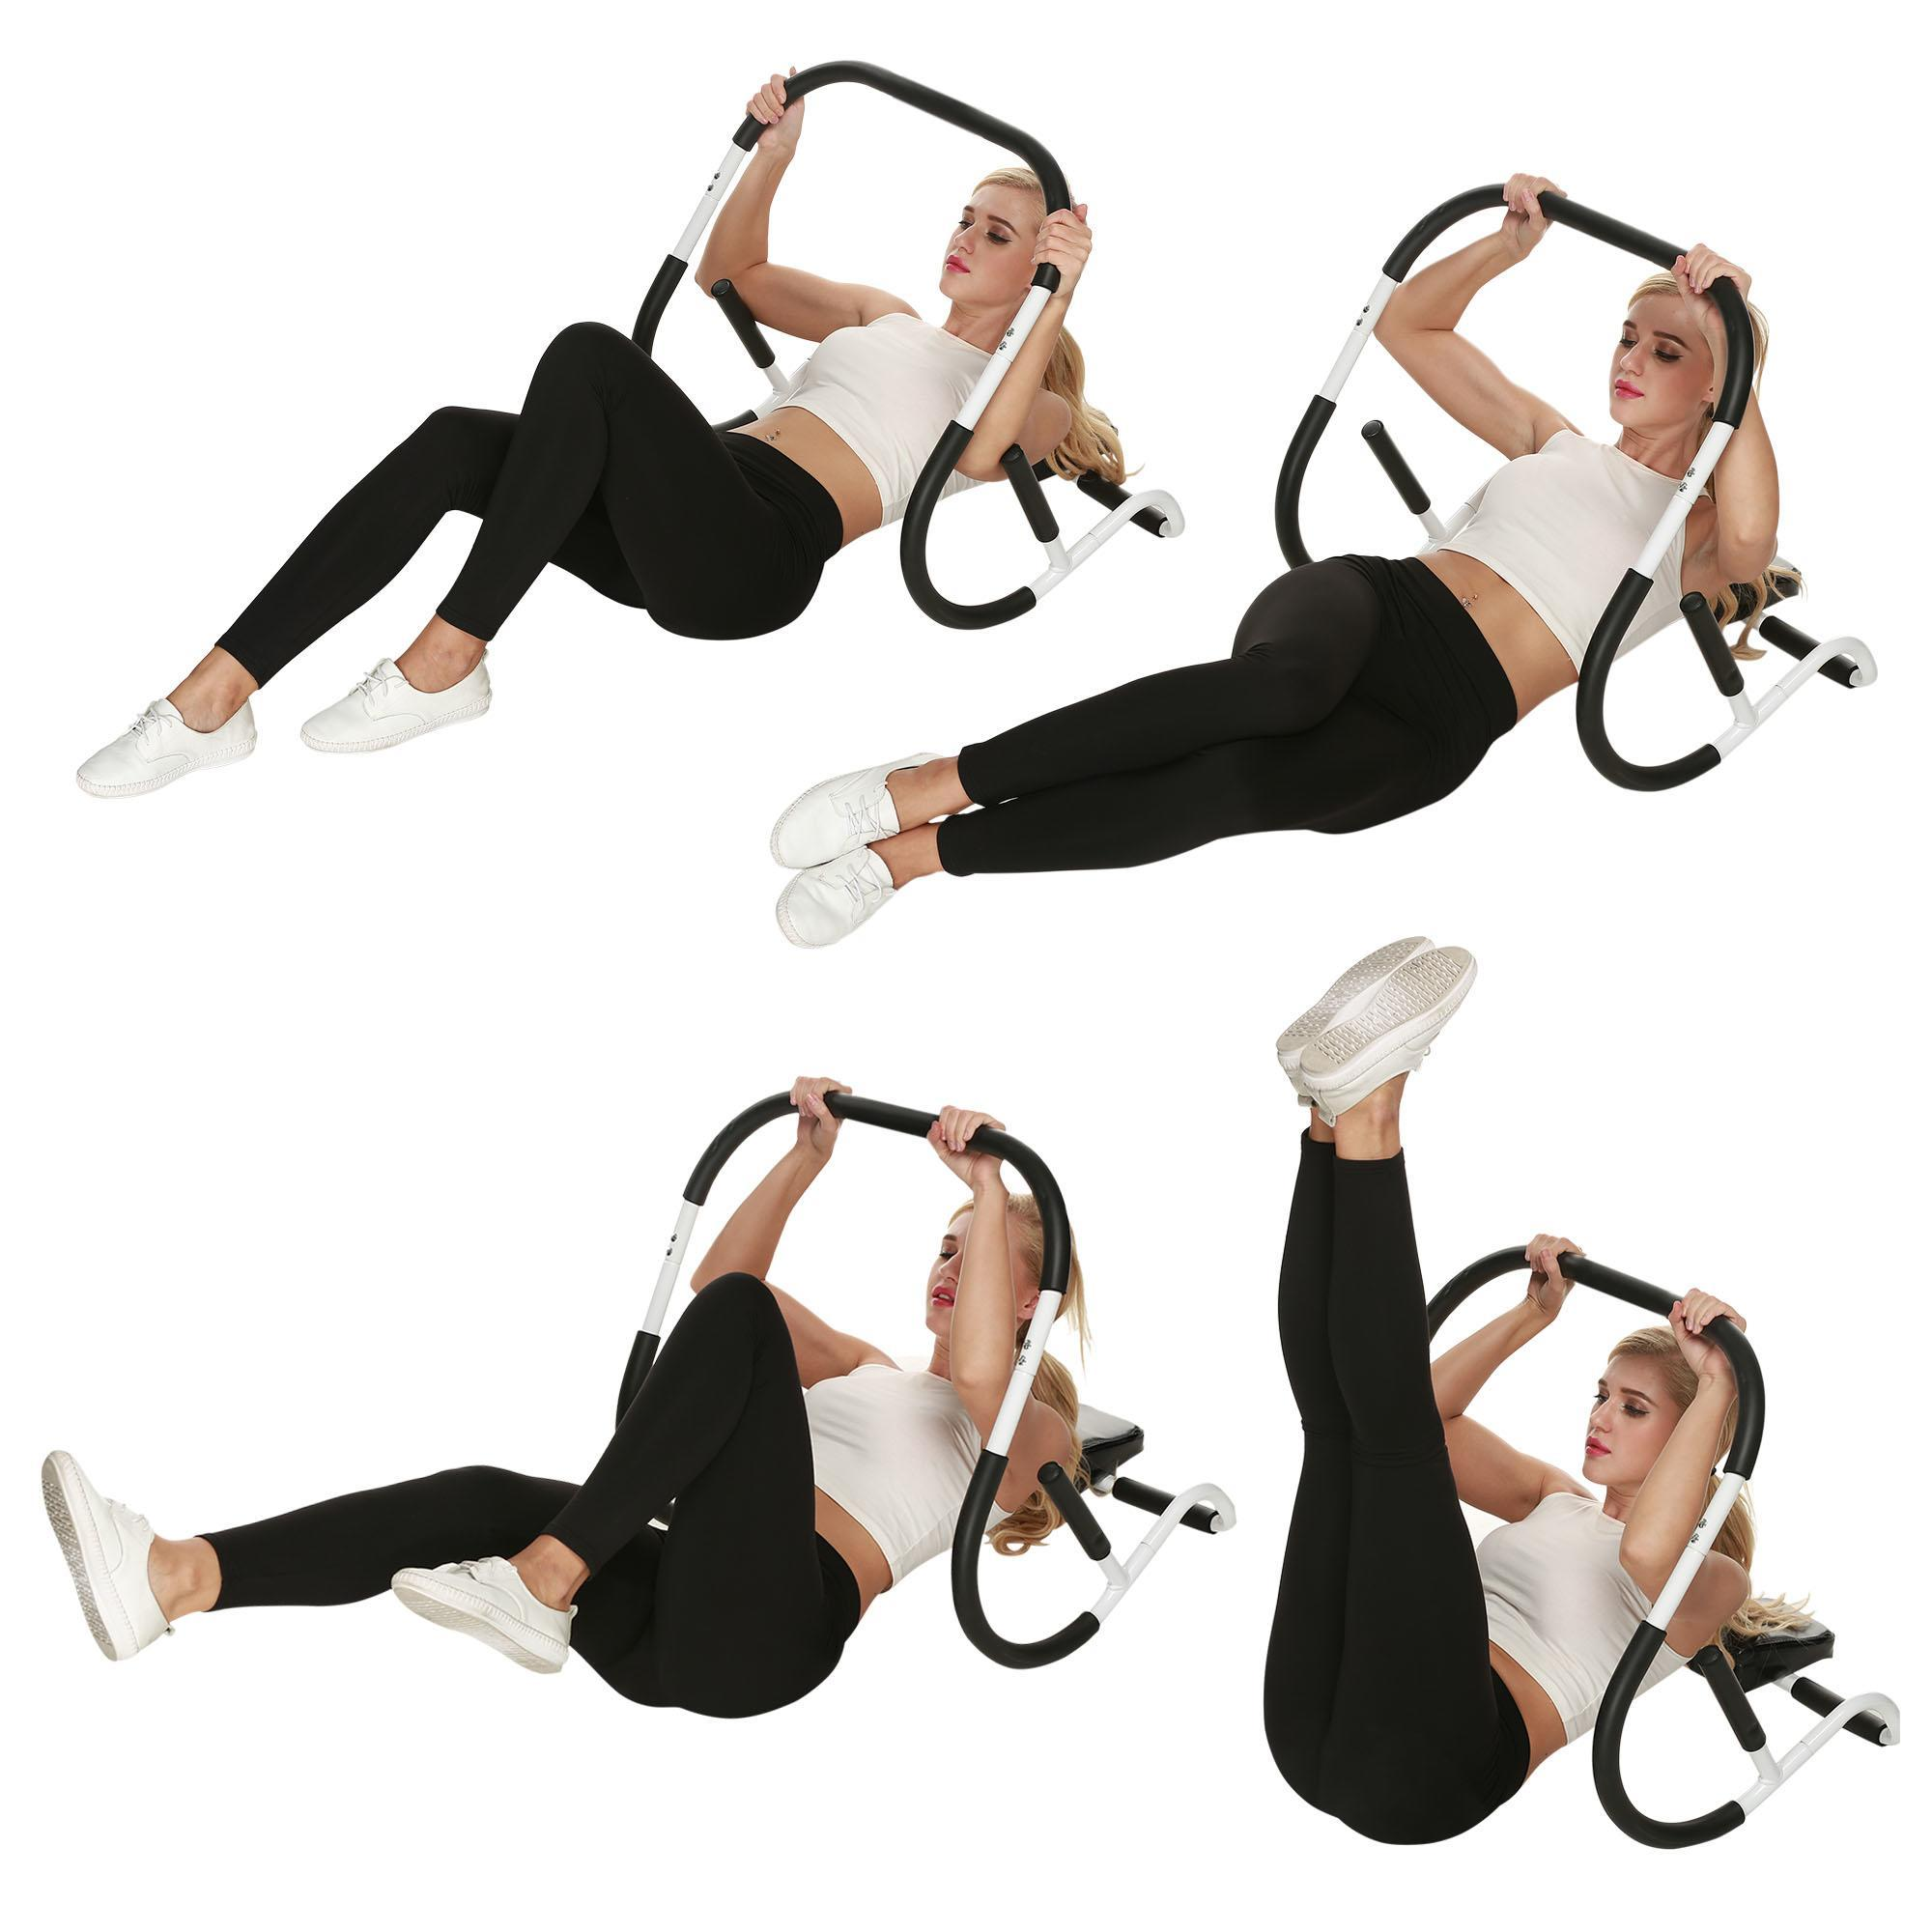 Cosway Ab Roller Crunch Machine Sturdy Fitness Equipment for Unisex Adults 2